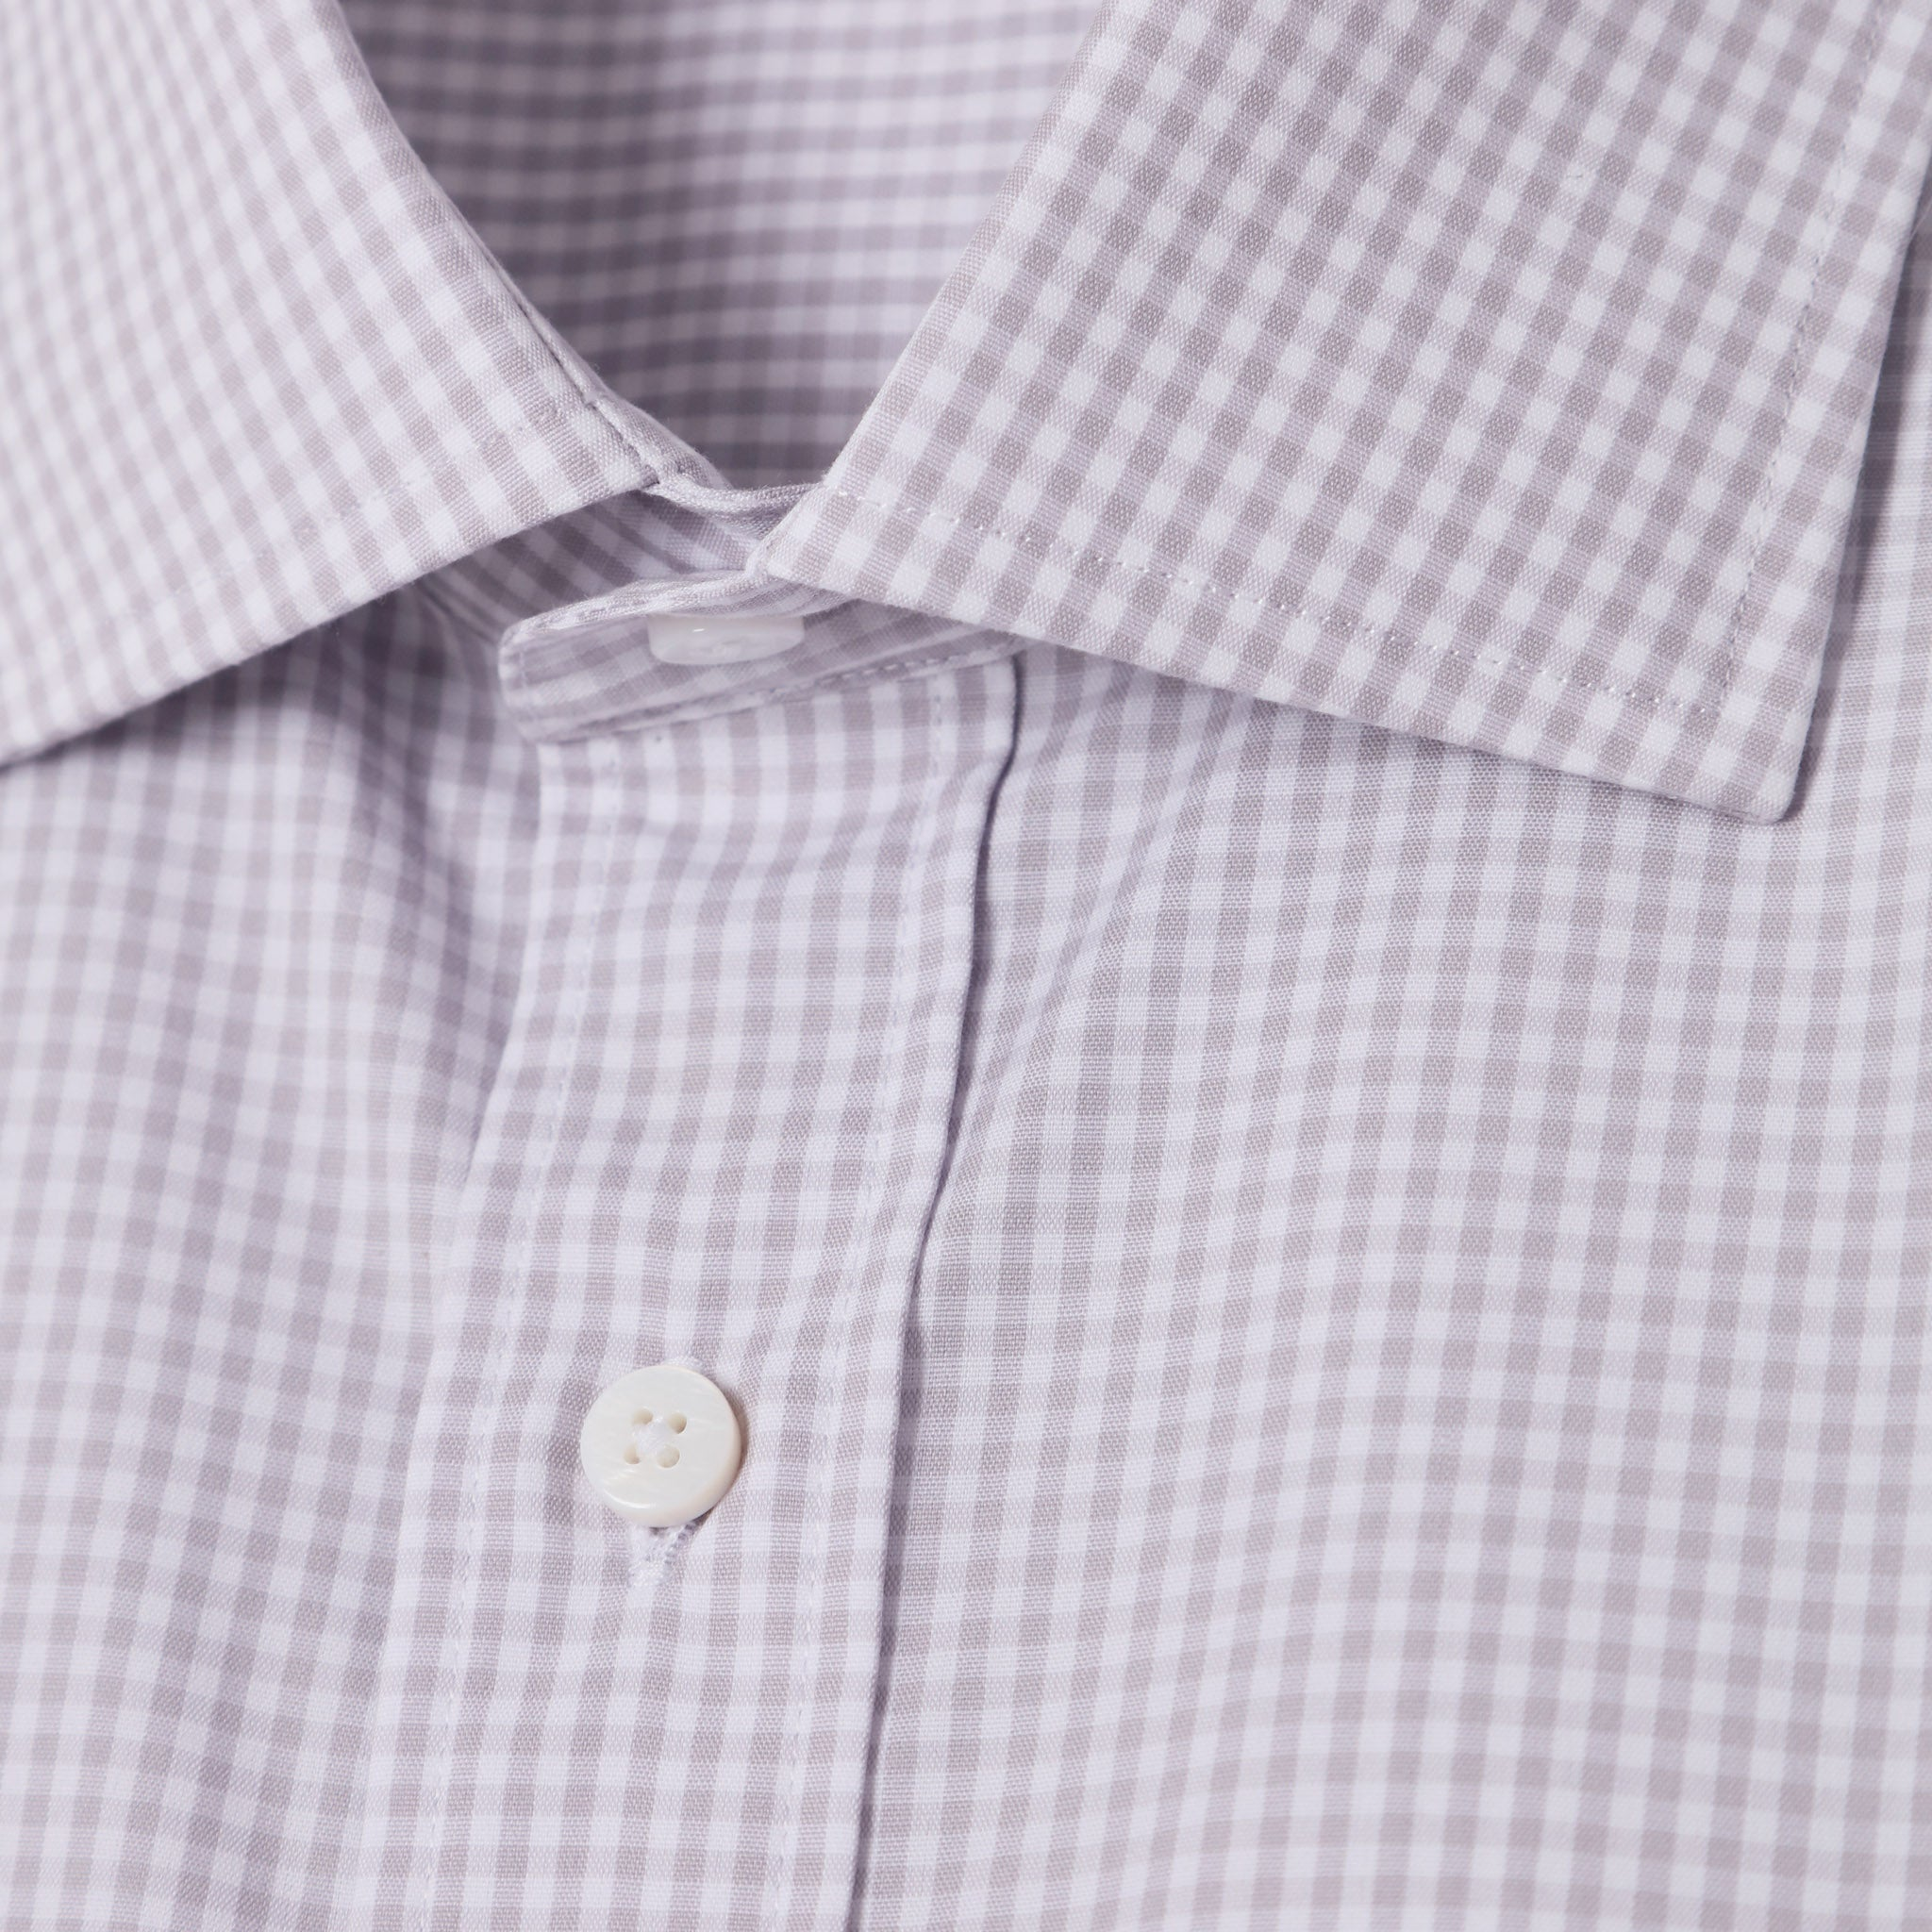 Mason Everyday Shirt in Grey Gingham